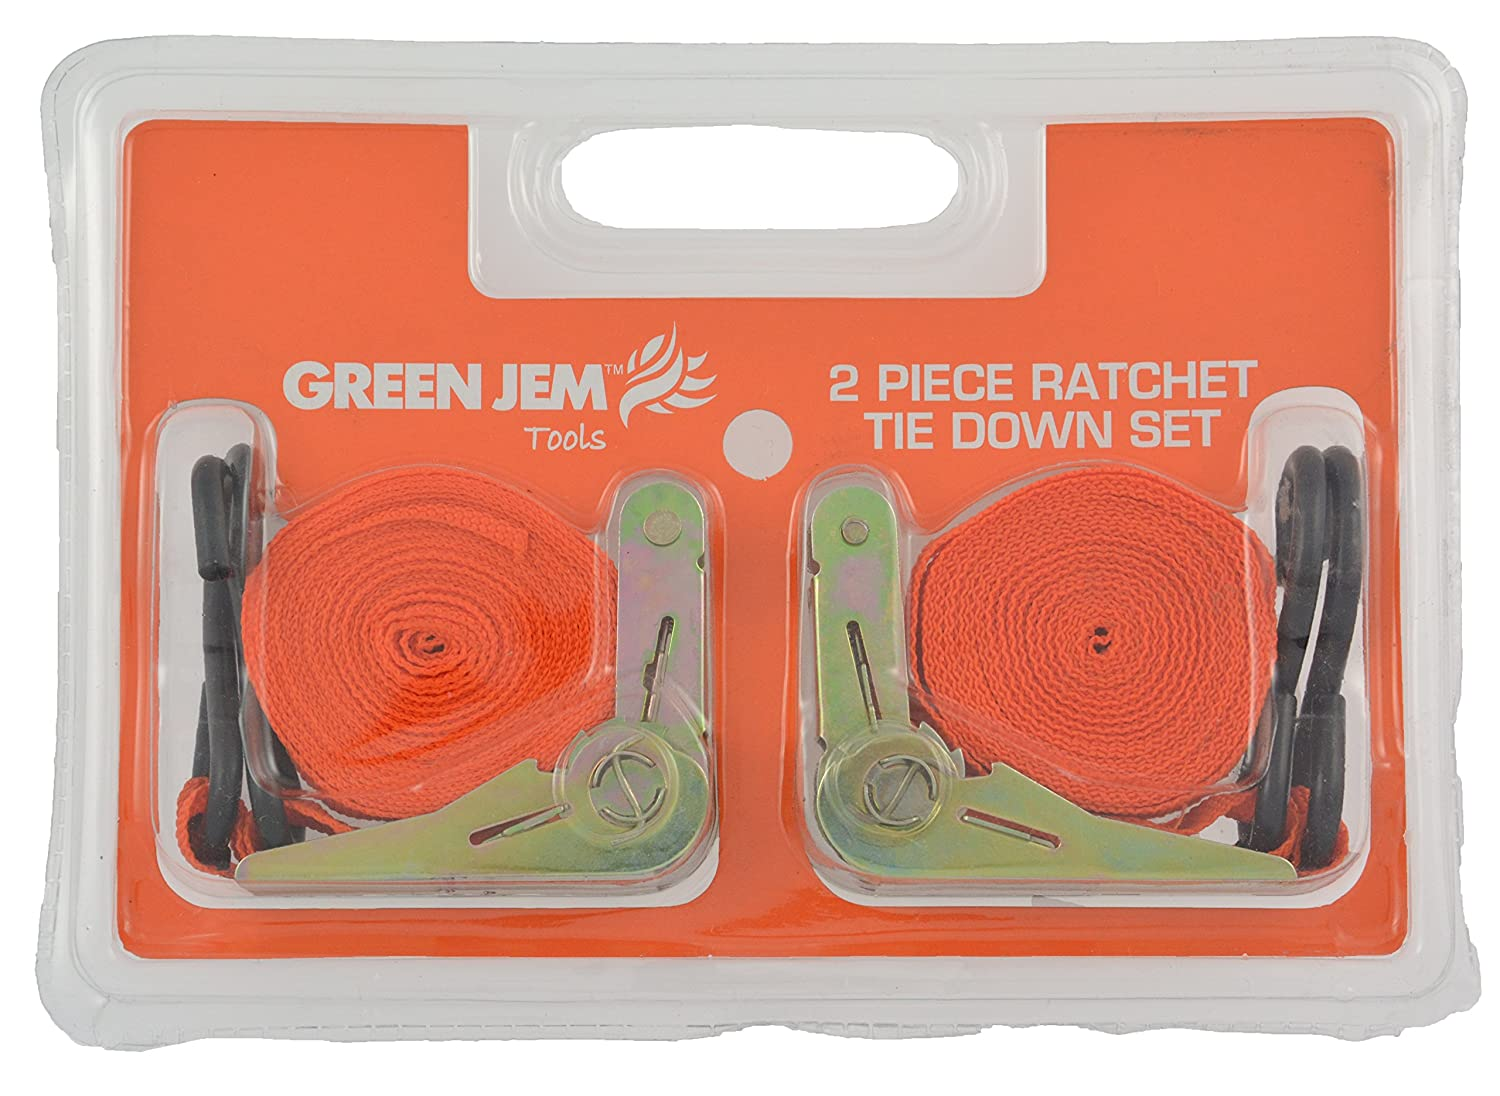 Orange Green Jem HTRTD15X2 Ratchet Tie Down Set